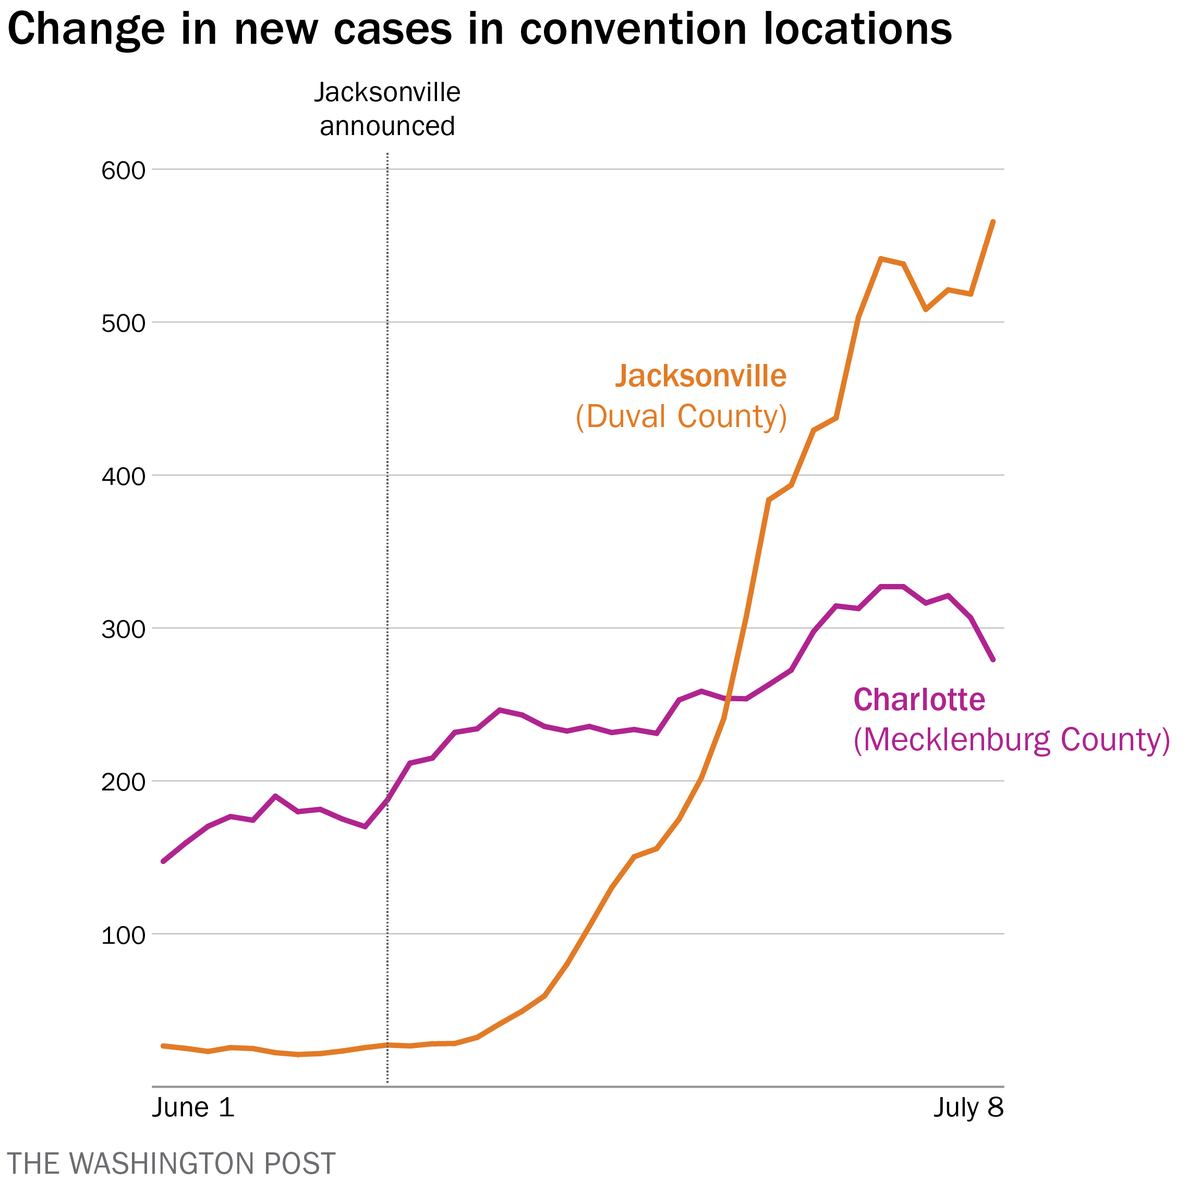 Remember when Trump was made that Charlotte was trying to curtail new infections by mandating containment measures, so he moved his convention speech to Jacksonville where they werent? Well, guess what. wapo.st/2AJJQHB